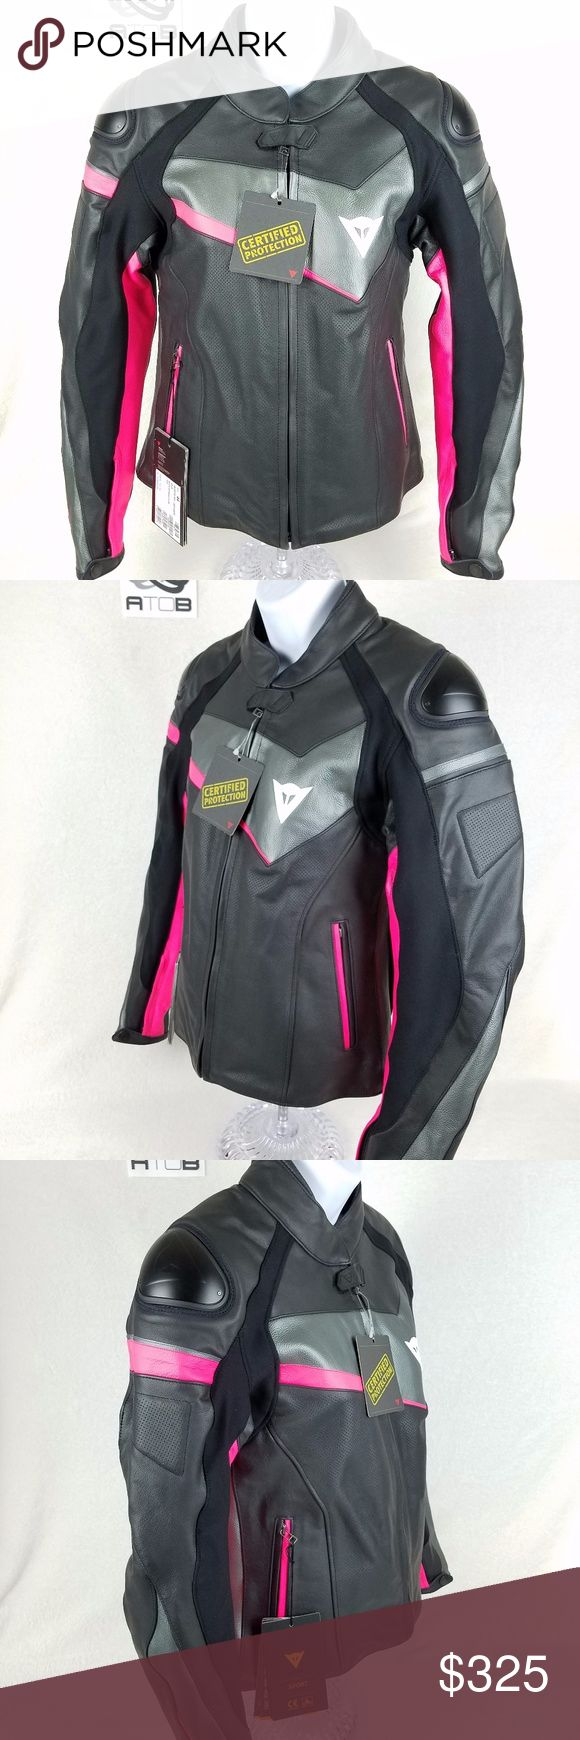 NEW Dainese Perforated Leather Motorcycle Jacket New Never Worn  Protection: -Composite protectors certified to EN 1621.1 Standard -Co-injected shoulder with aluminum insert -Suit certified to CE Category II - 89/686/EEC Directive -Pocket for Dainese G1 or G2 back protector  Ergonomics and Comfort: -Tutu cowhide leather -S1 fabric -Elasticated inserts -Inserts in elasticated fabric -Hip adjustment -TechFrame internal liner -Localized perforation -Air vents on back -Jacket to trousers…